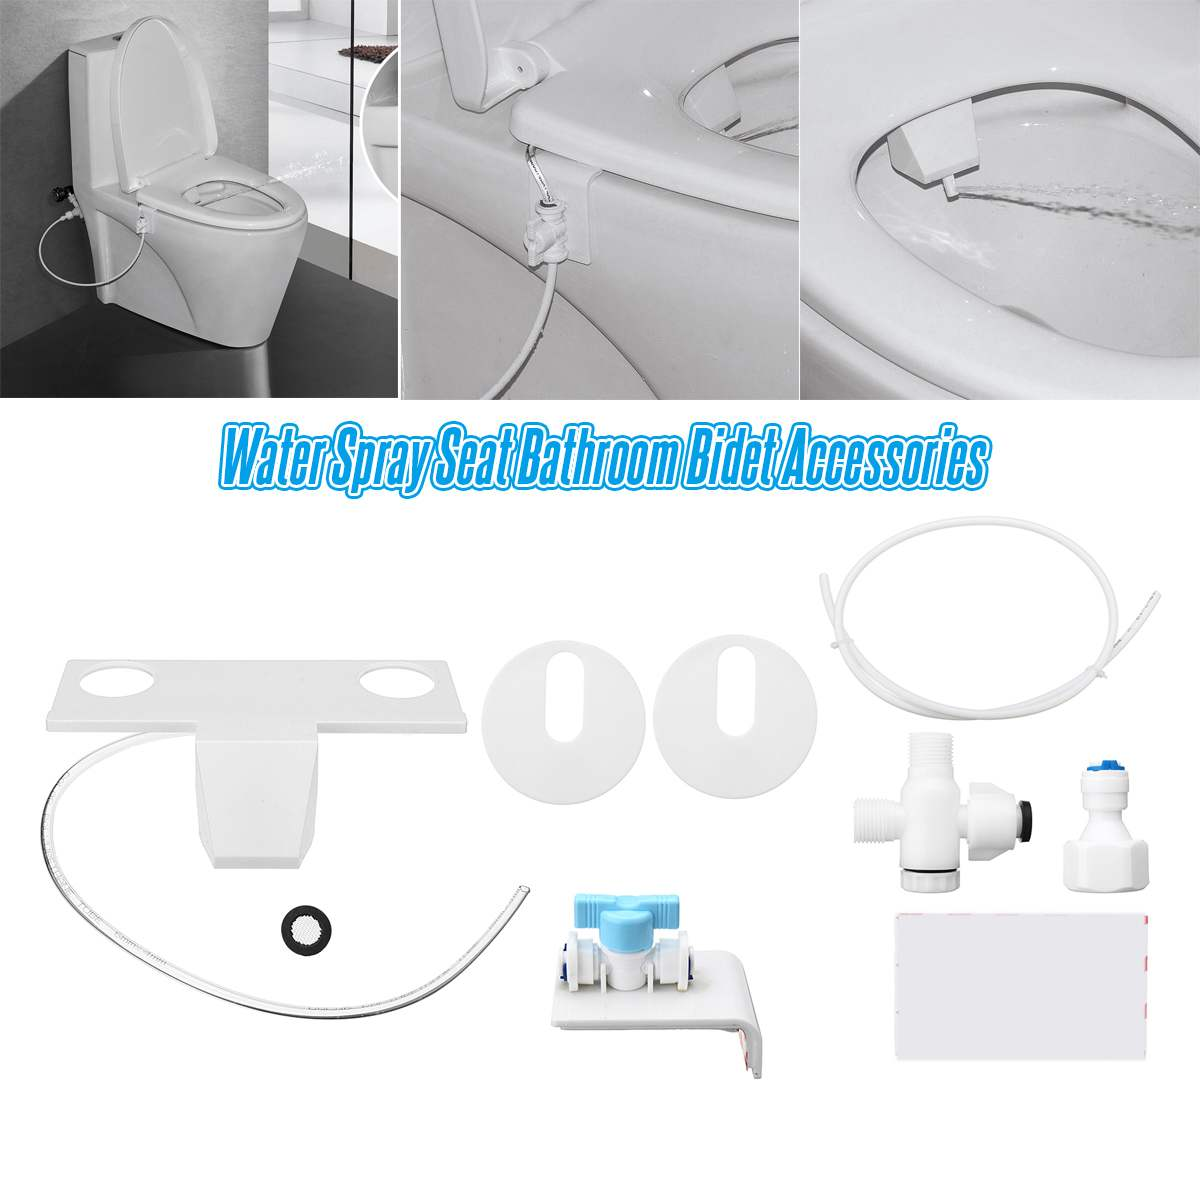 Permalink to Bathroom Bidet Washing Guns Nozzle Professional Toilet Water Spray Seat Fresh for Bathroom Bidet Parts Accessories